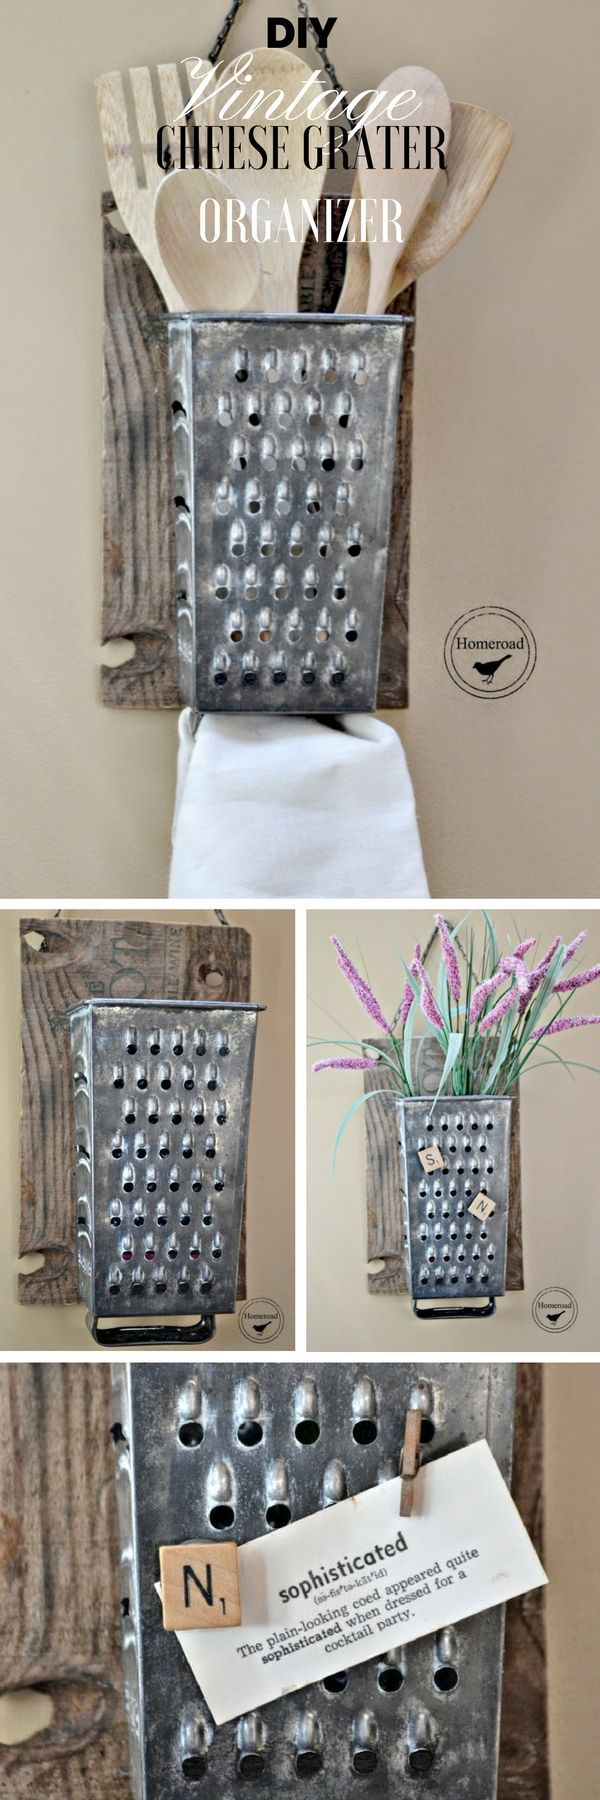 Home Decor Diy best 25+ vintage diy ideas on pinterest | vintage bedroom decor